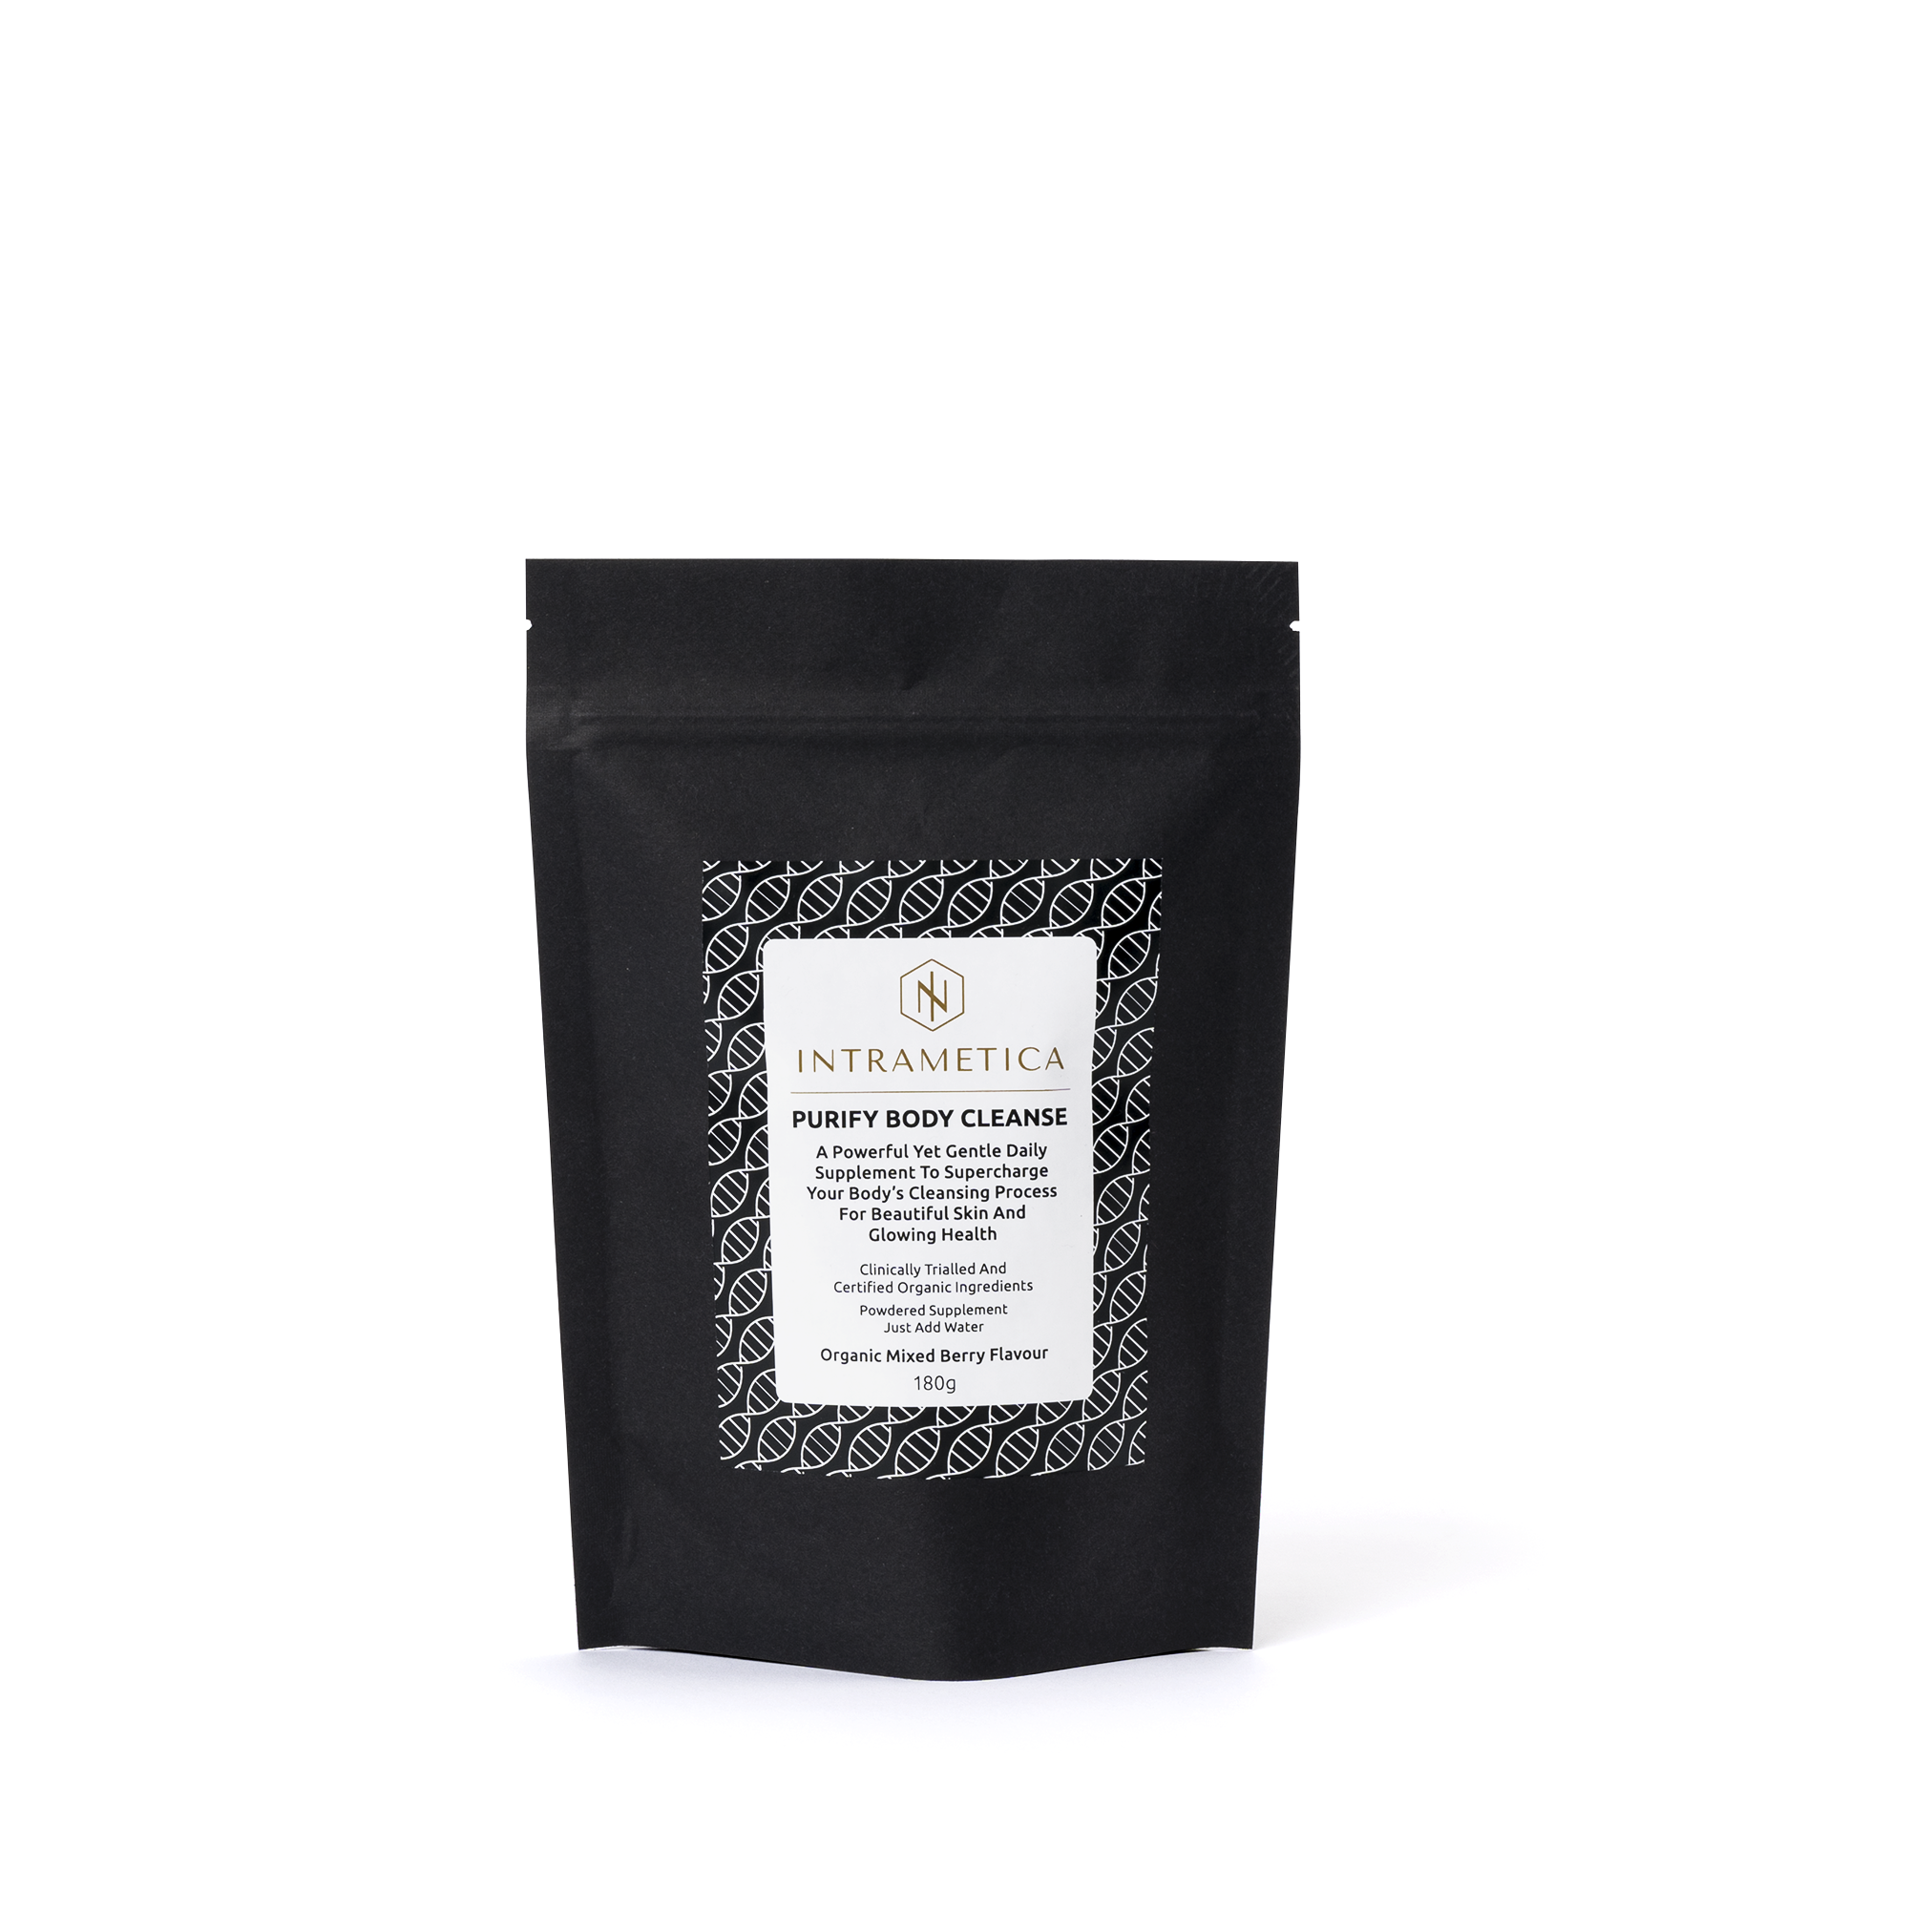 Intrametica Purify Body Cleanse Pouch | 180g Organic Mixed Berry